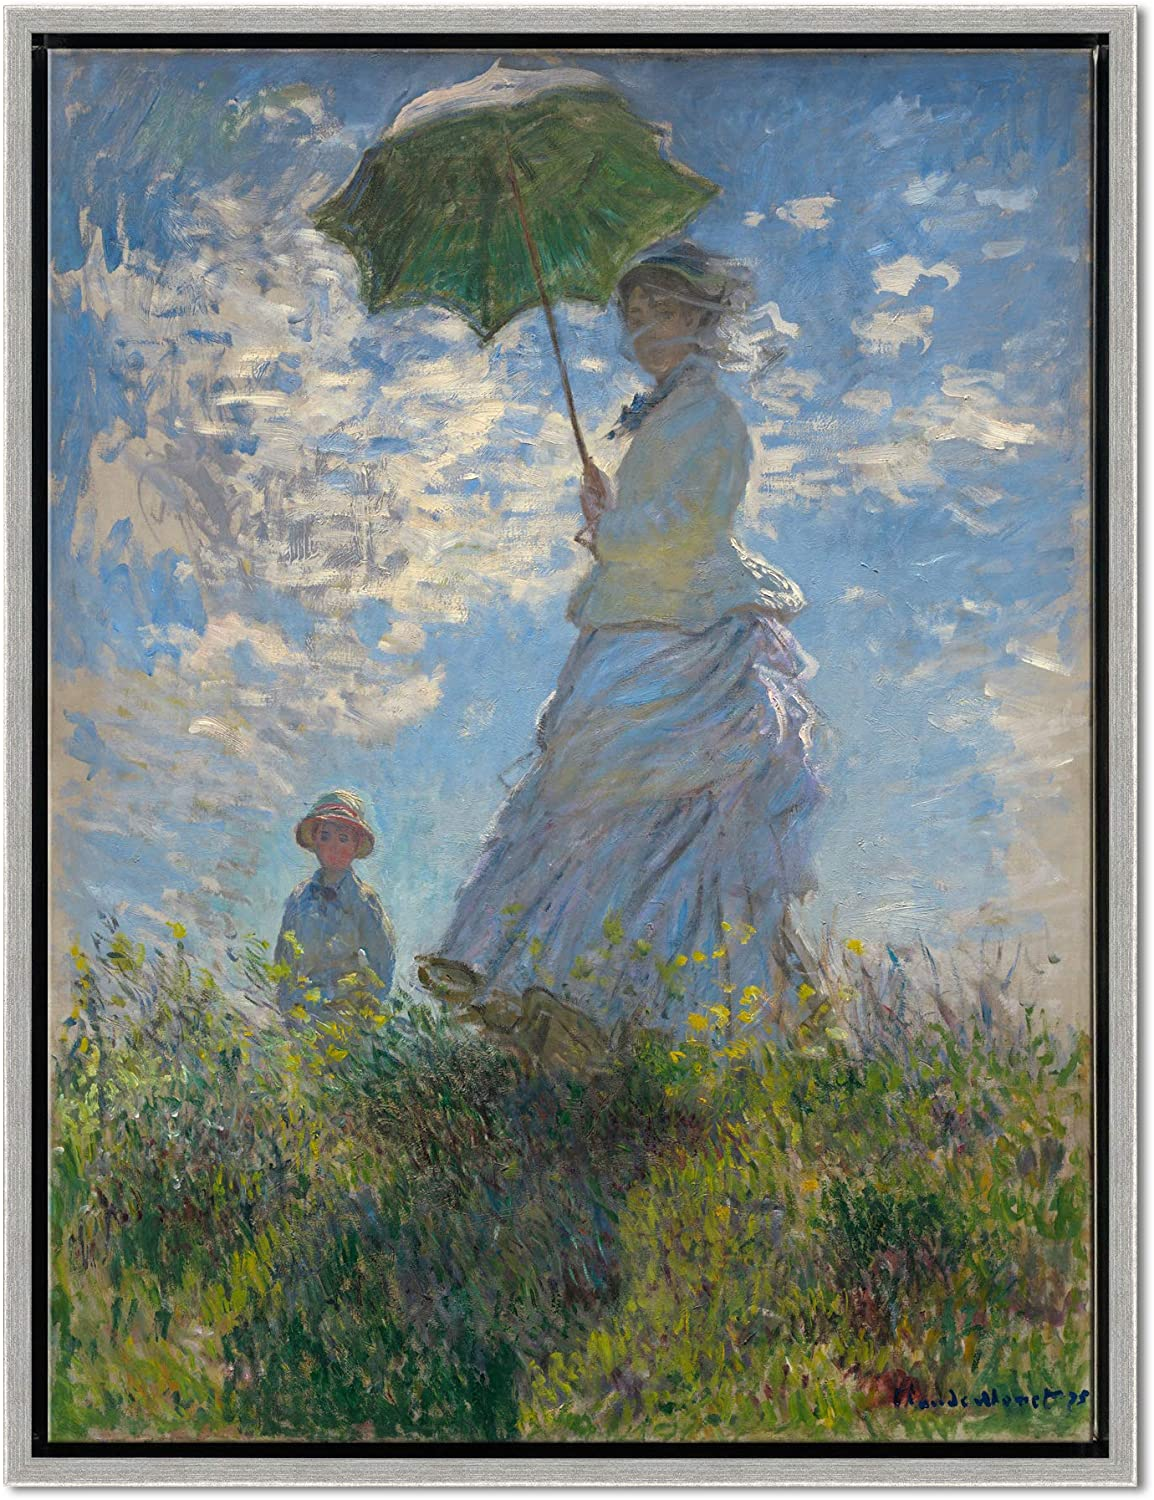 Wieco Art Framed Art Woman with a Parasol Madame Monet and Her Son of Claude Monet Famous Classic Oil Paintings Reproduction Canvas Prints Wall Art for Bedroom Home Decor Silver Frame MON-0103-3040SF